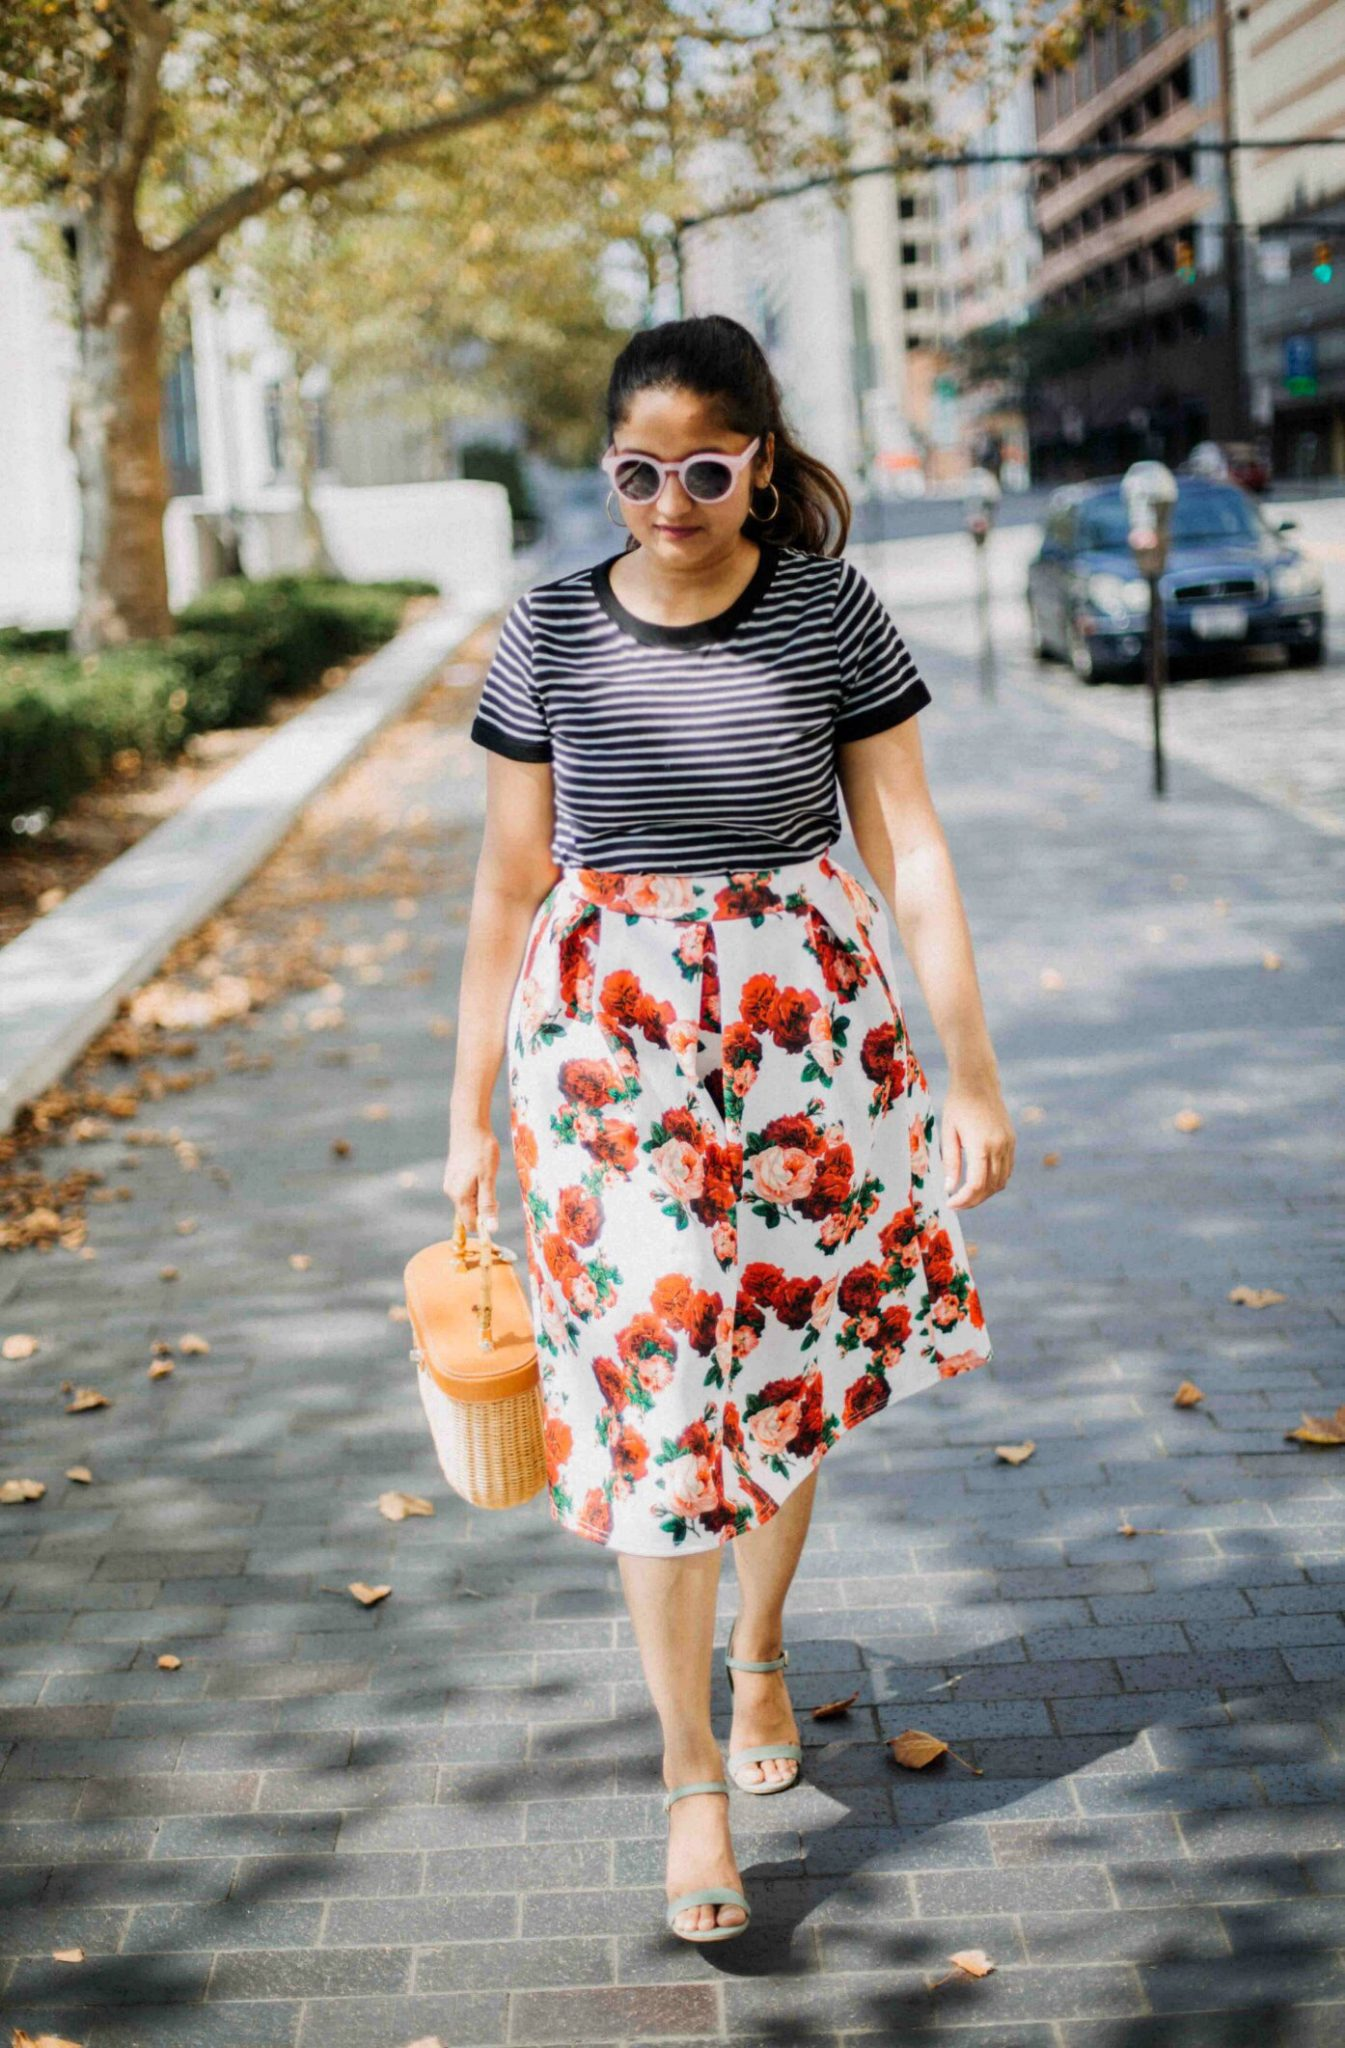 Lifestyle Blog Dreaming Loud sharing chic ways to wear floral for Spring with stripes - Spring Outfit Ideas featured by popular Ohio modest fashion blogger, Dreaming Loud